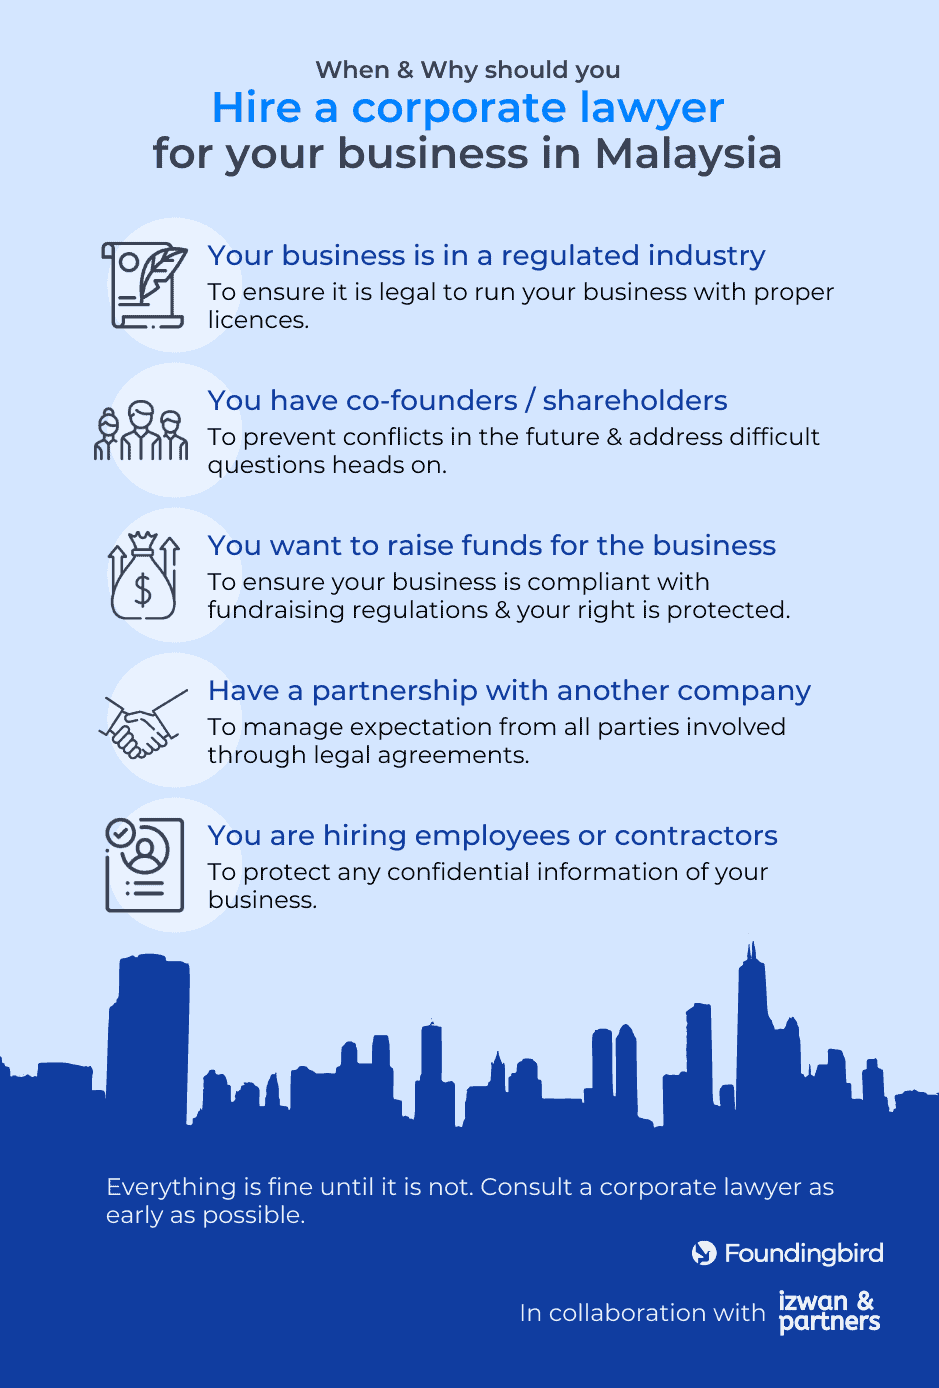 When & why you should hire a corporate lawyer for your business in Malaysia